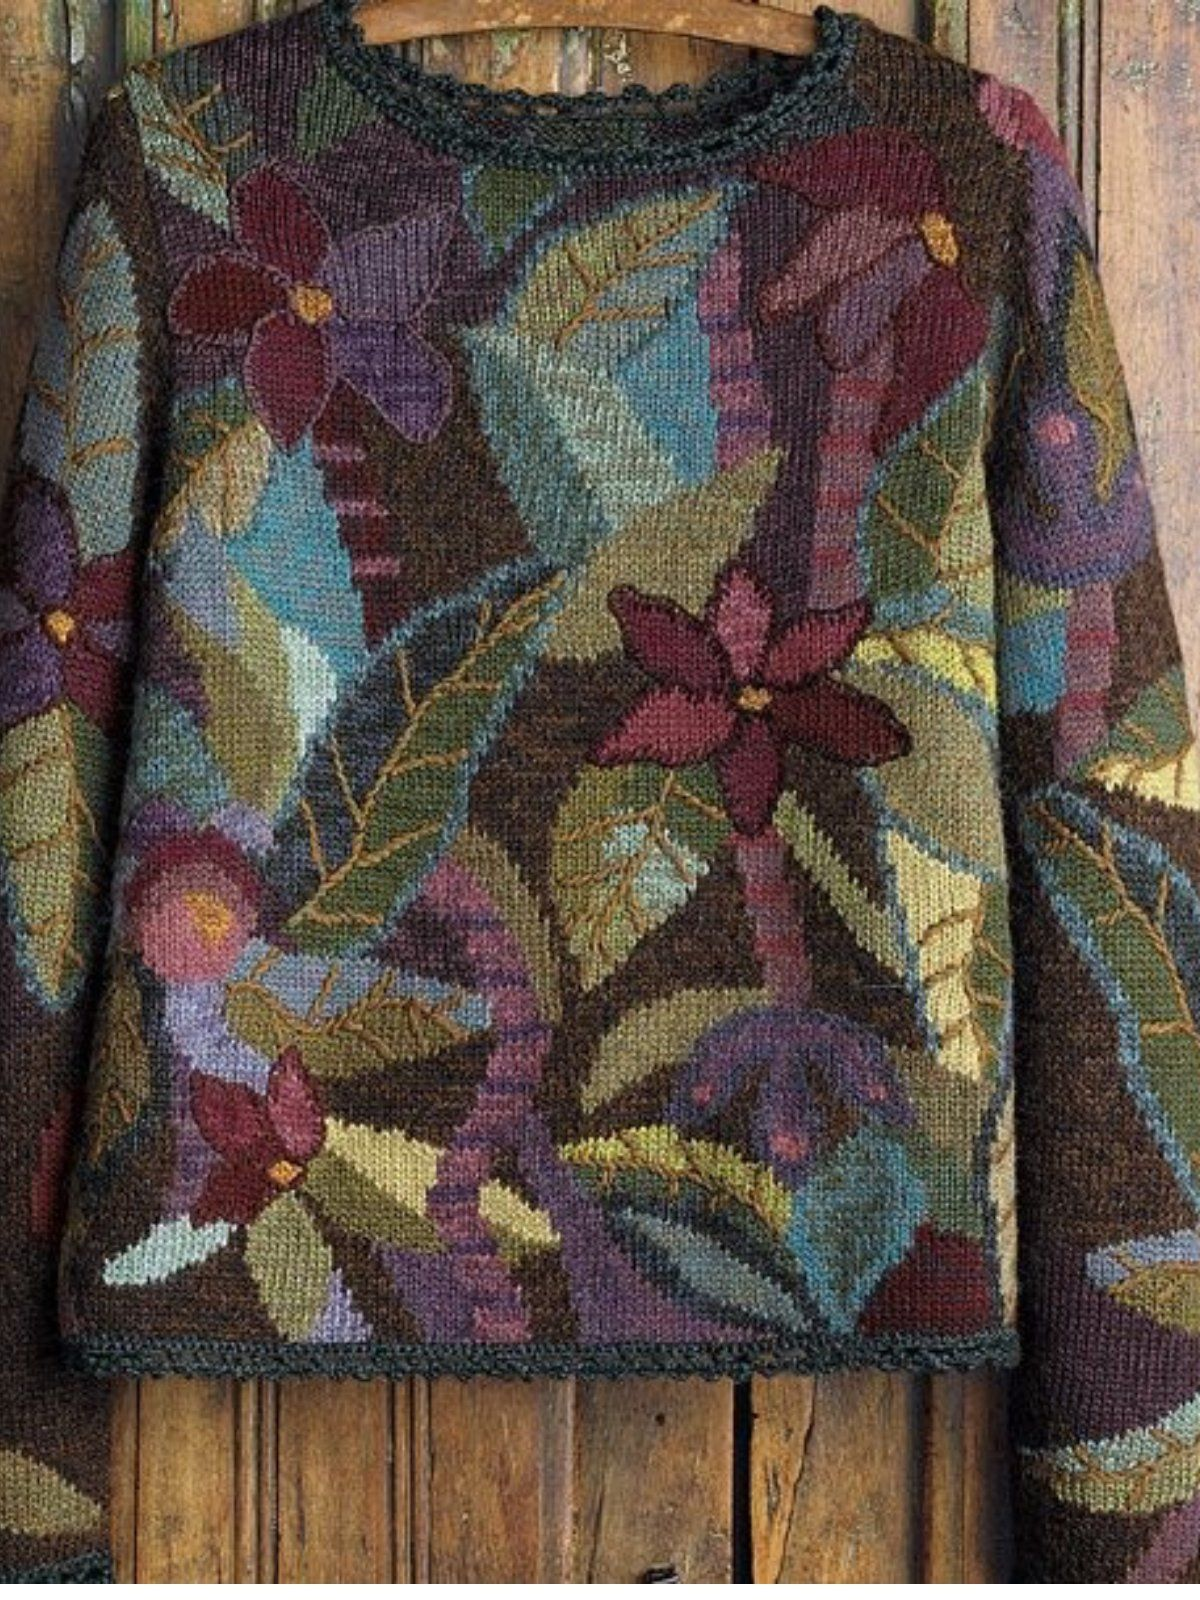 Pin by AnnieBobannieFaFannie on Knitting patterns free